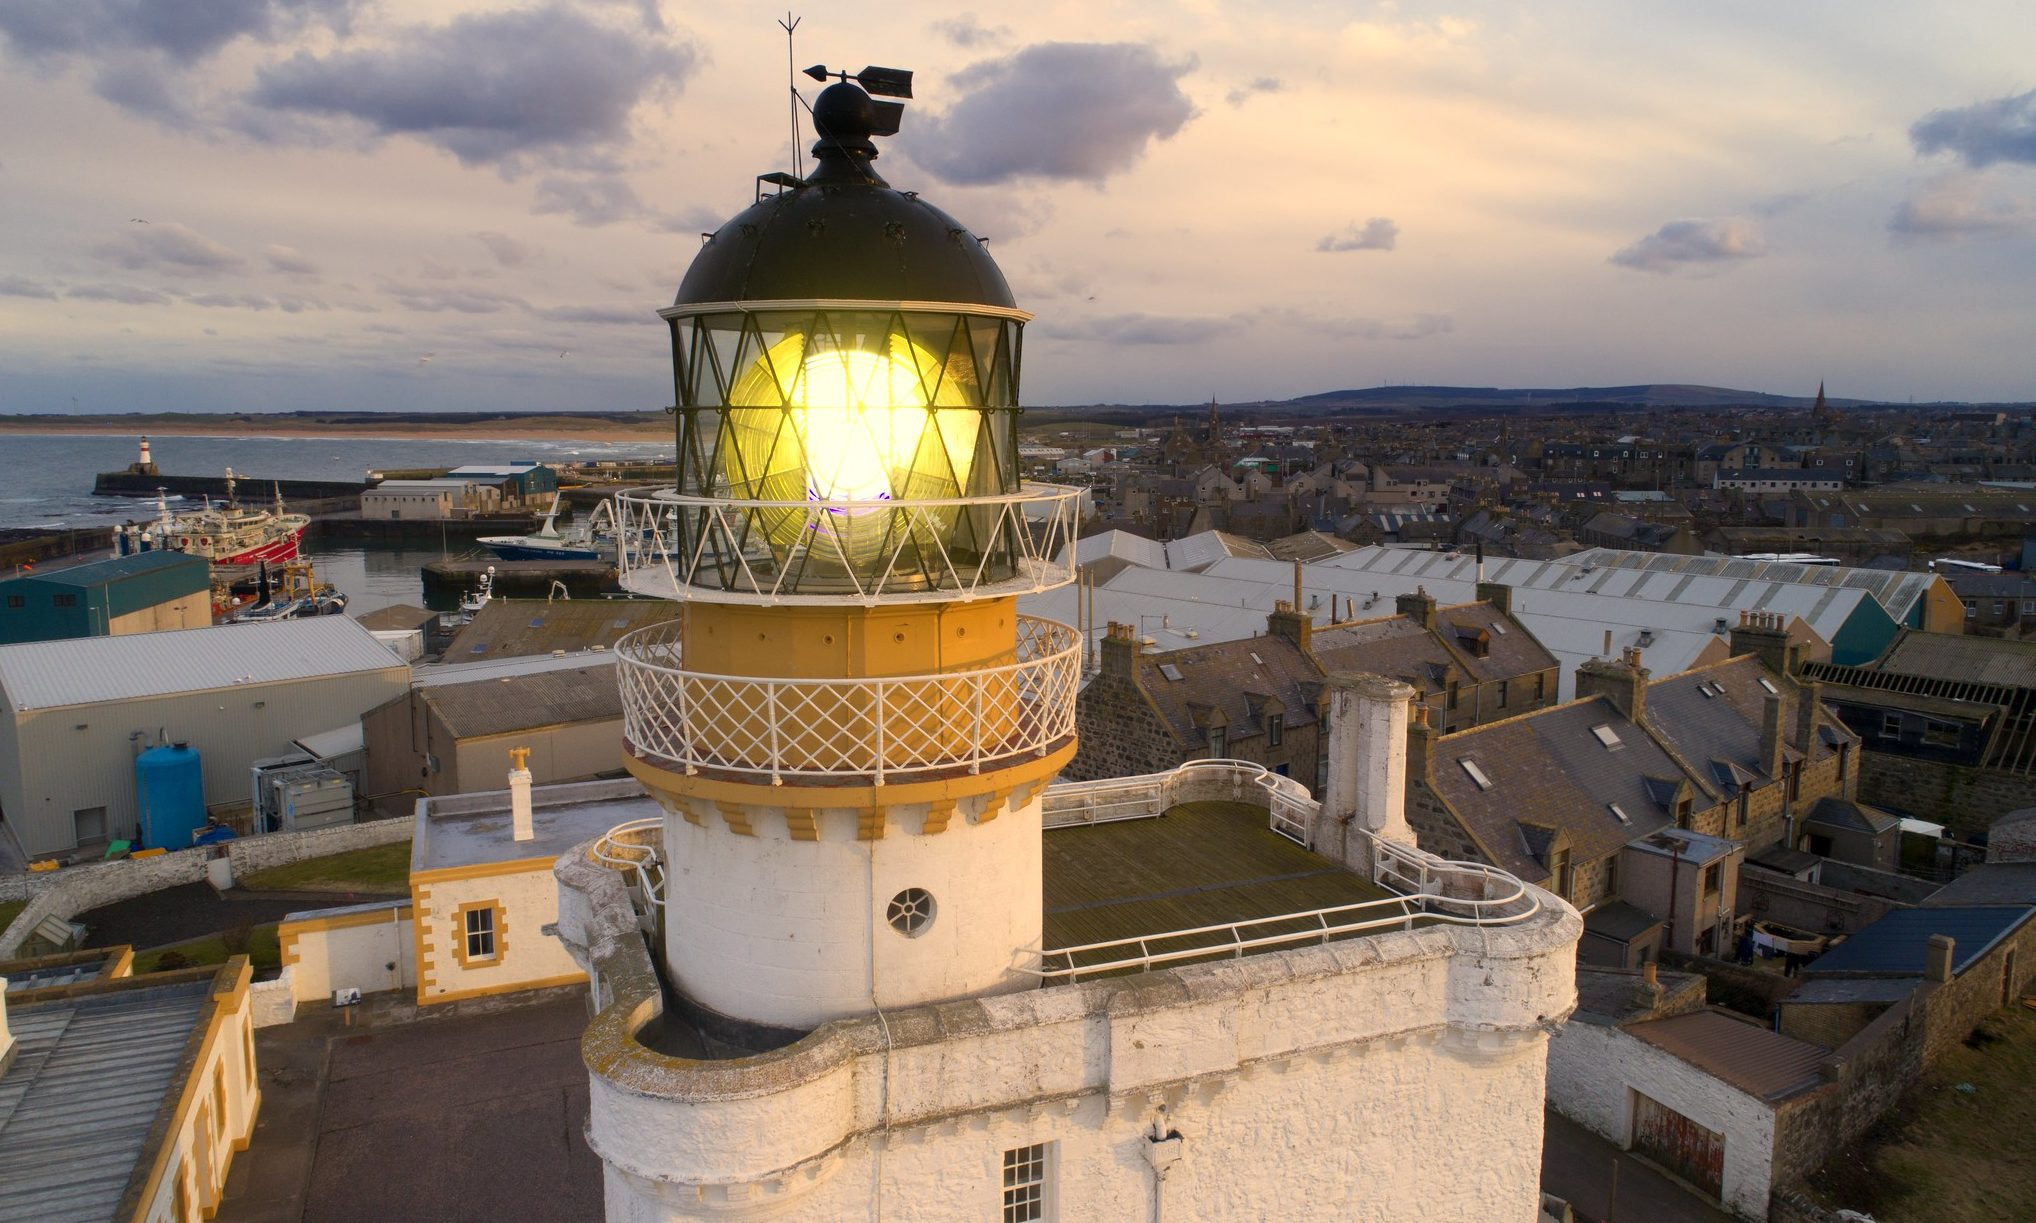 The Museum of Scottish Lighthouses in Fraserburgh has received a vital funding boost.